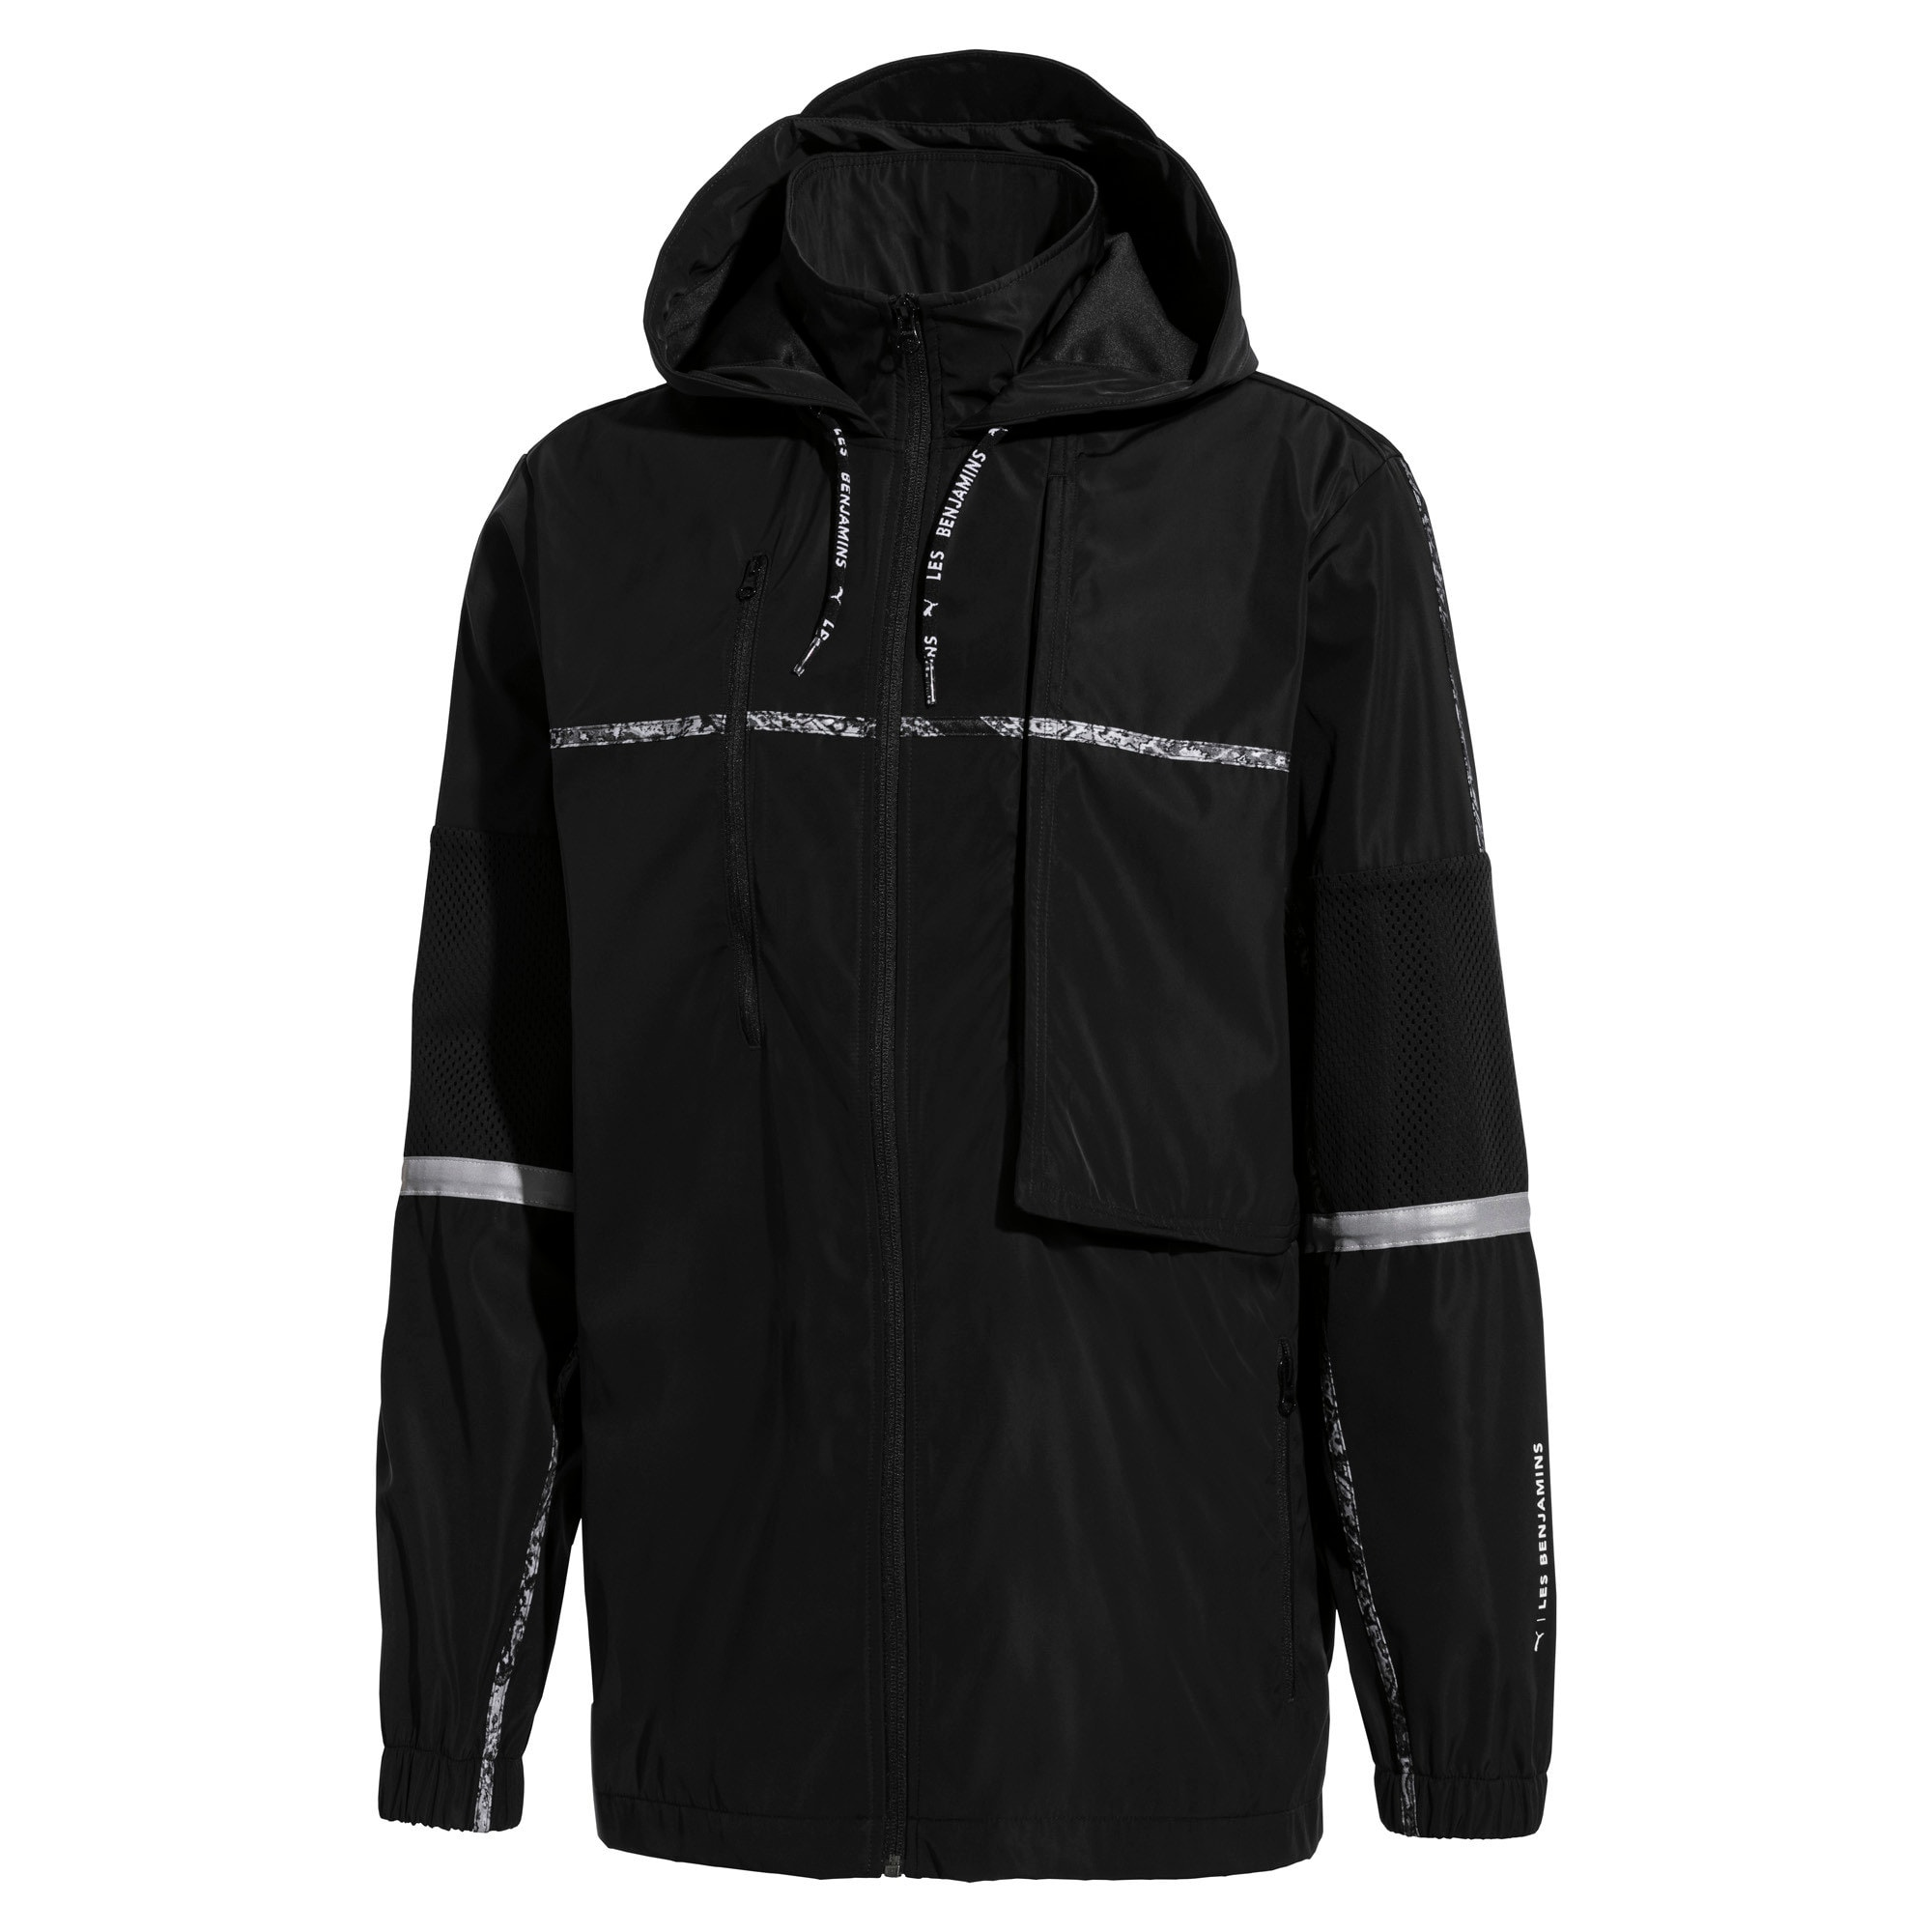 Thumbnail 1 of PUMA x LES BENJAMINS Men's Windbreaker, Puma Black, medium